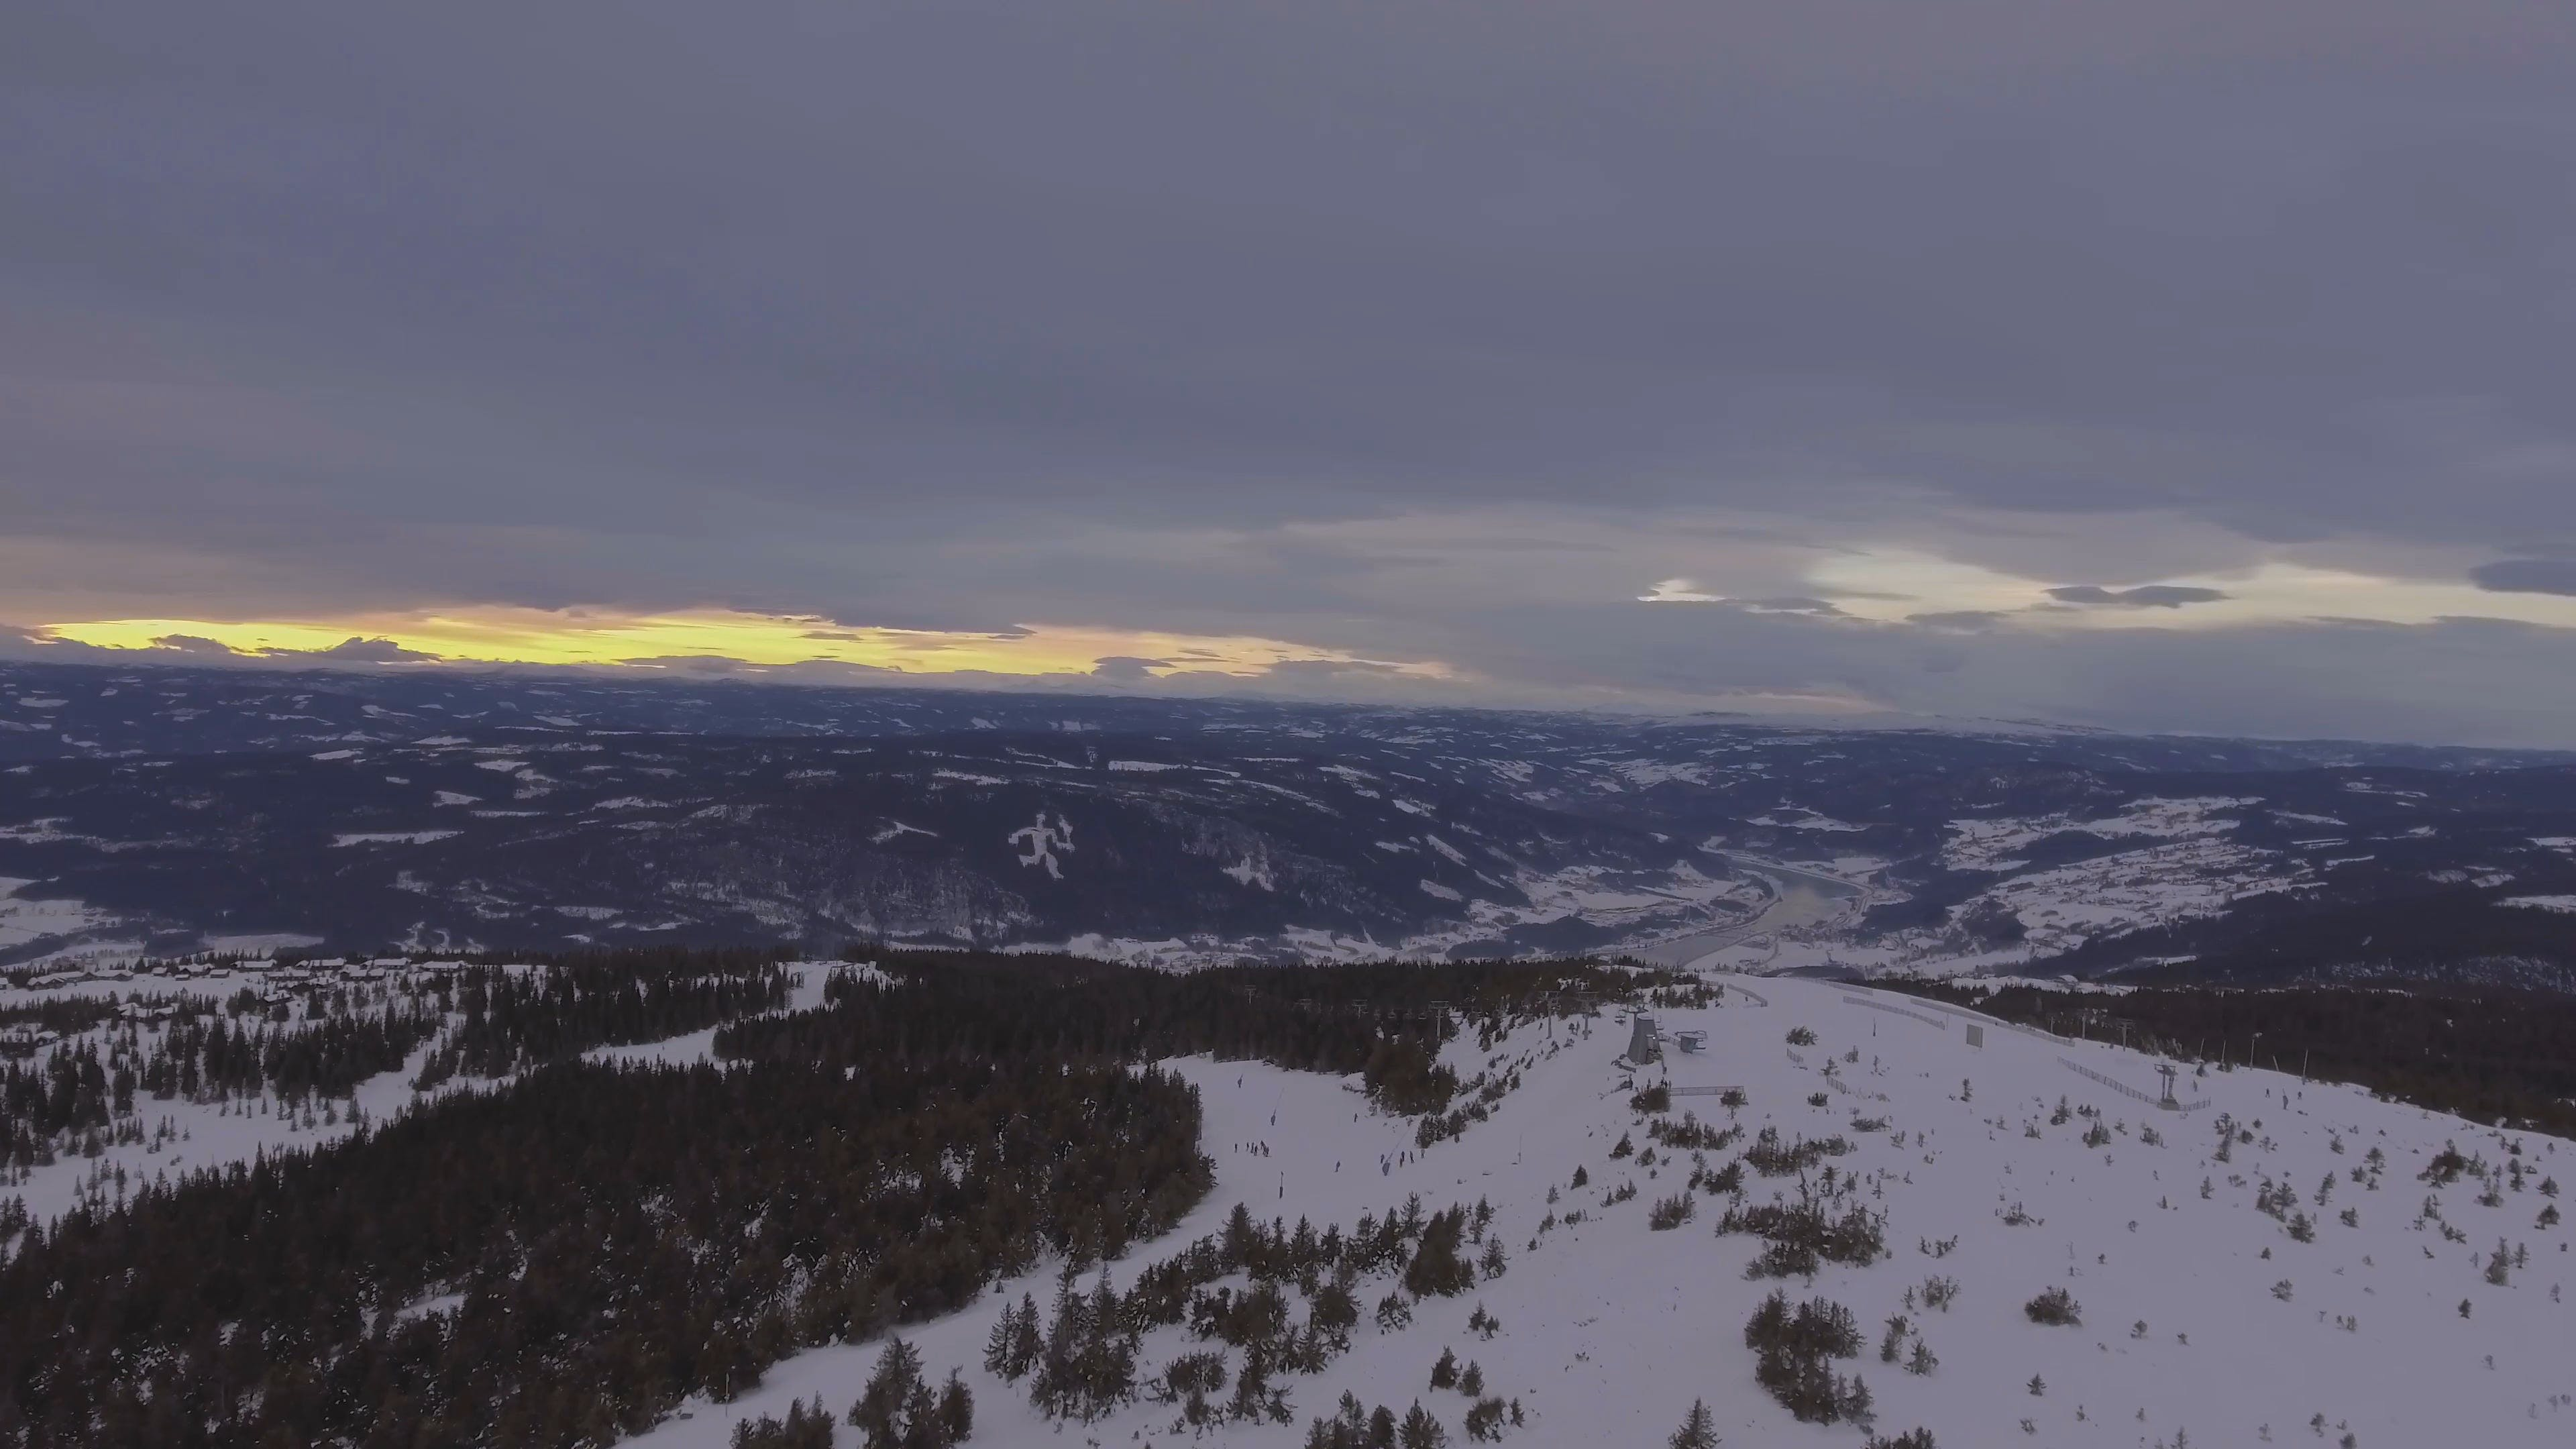 High Angle View Of Snowy Mountain